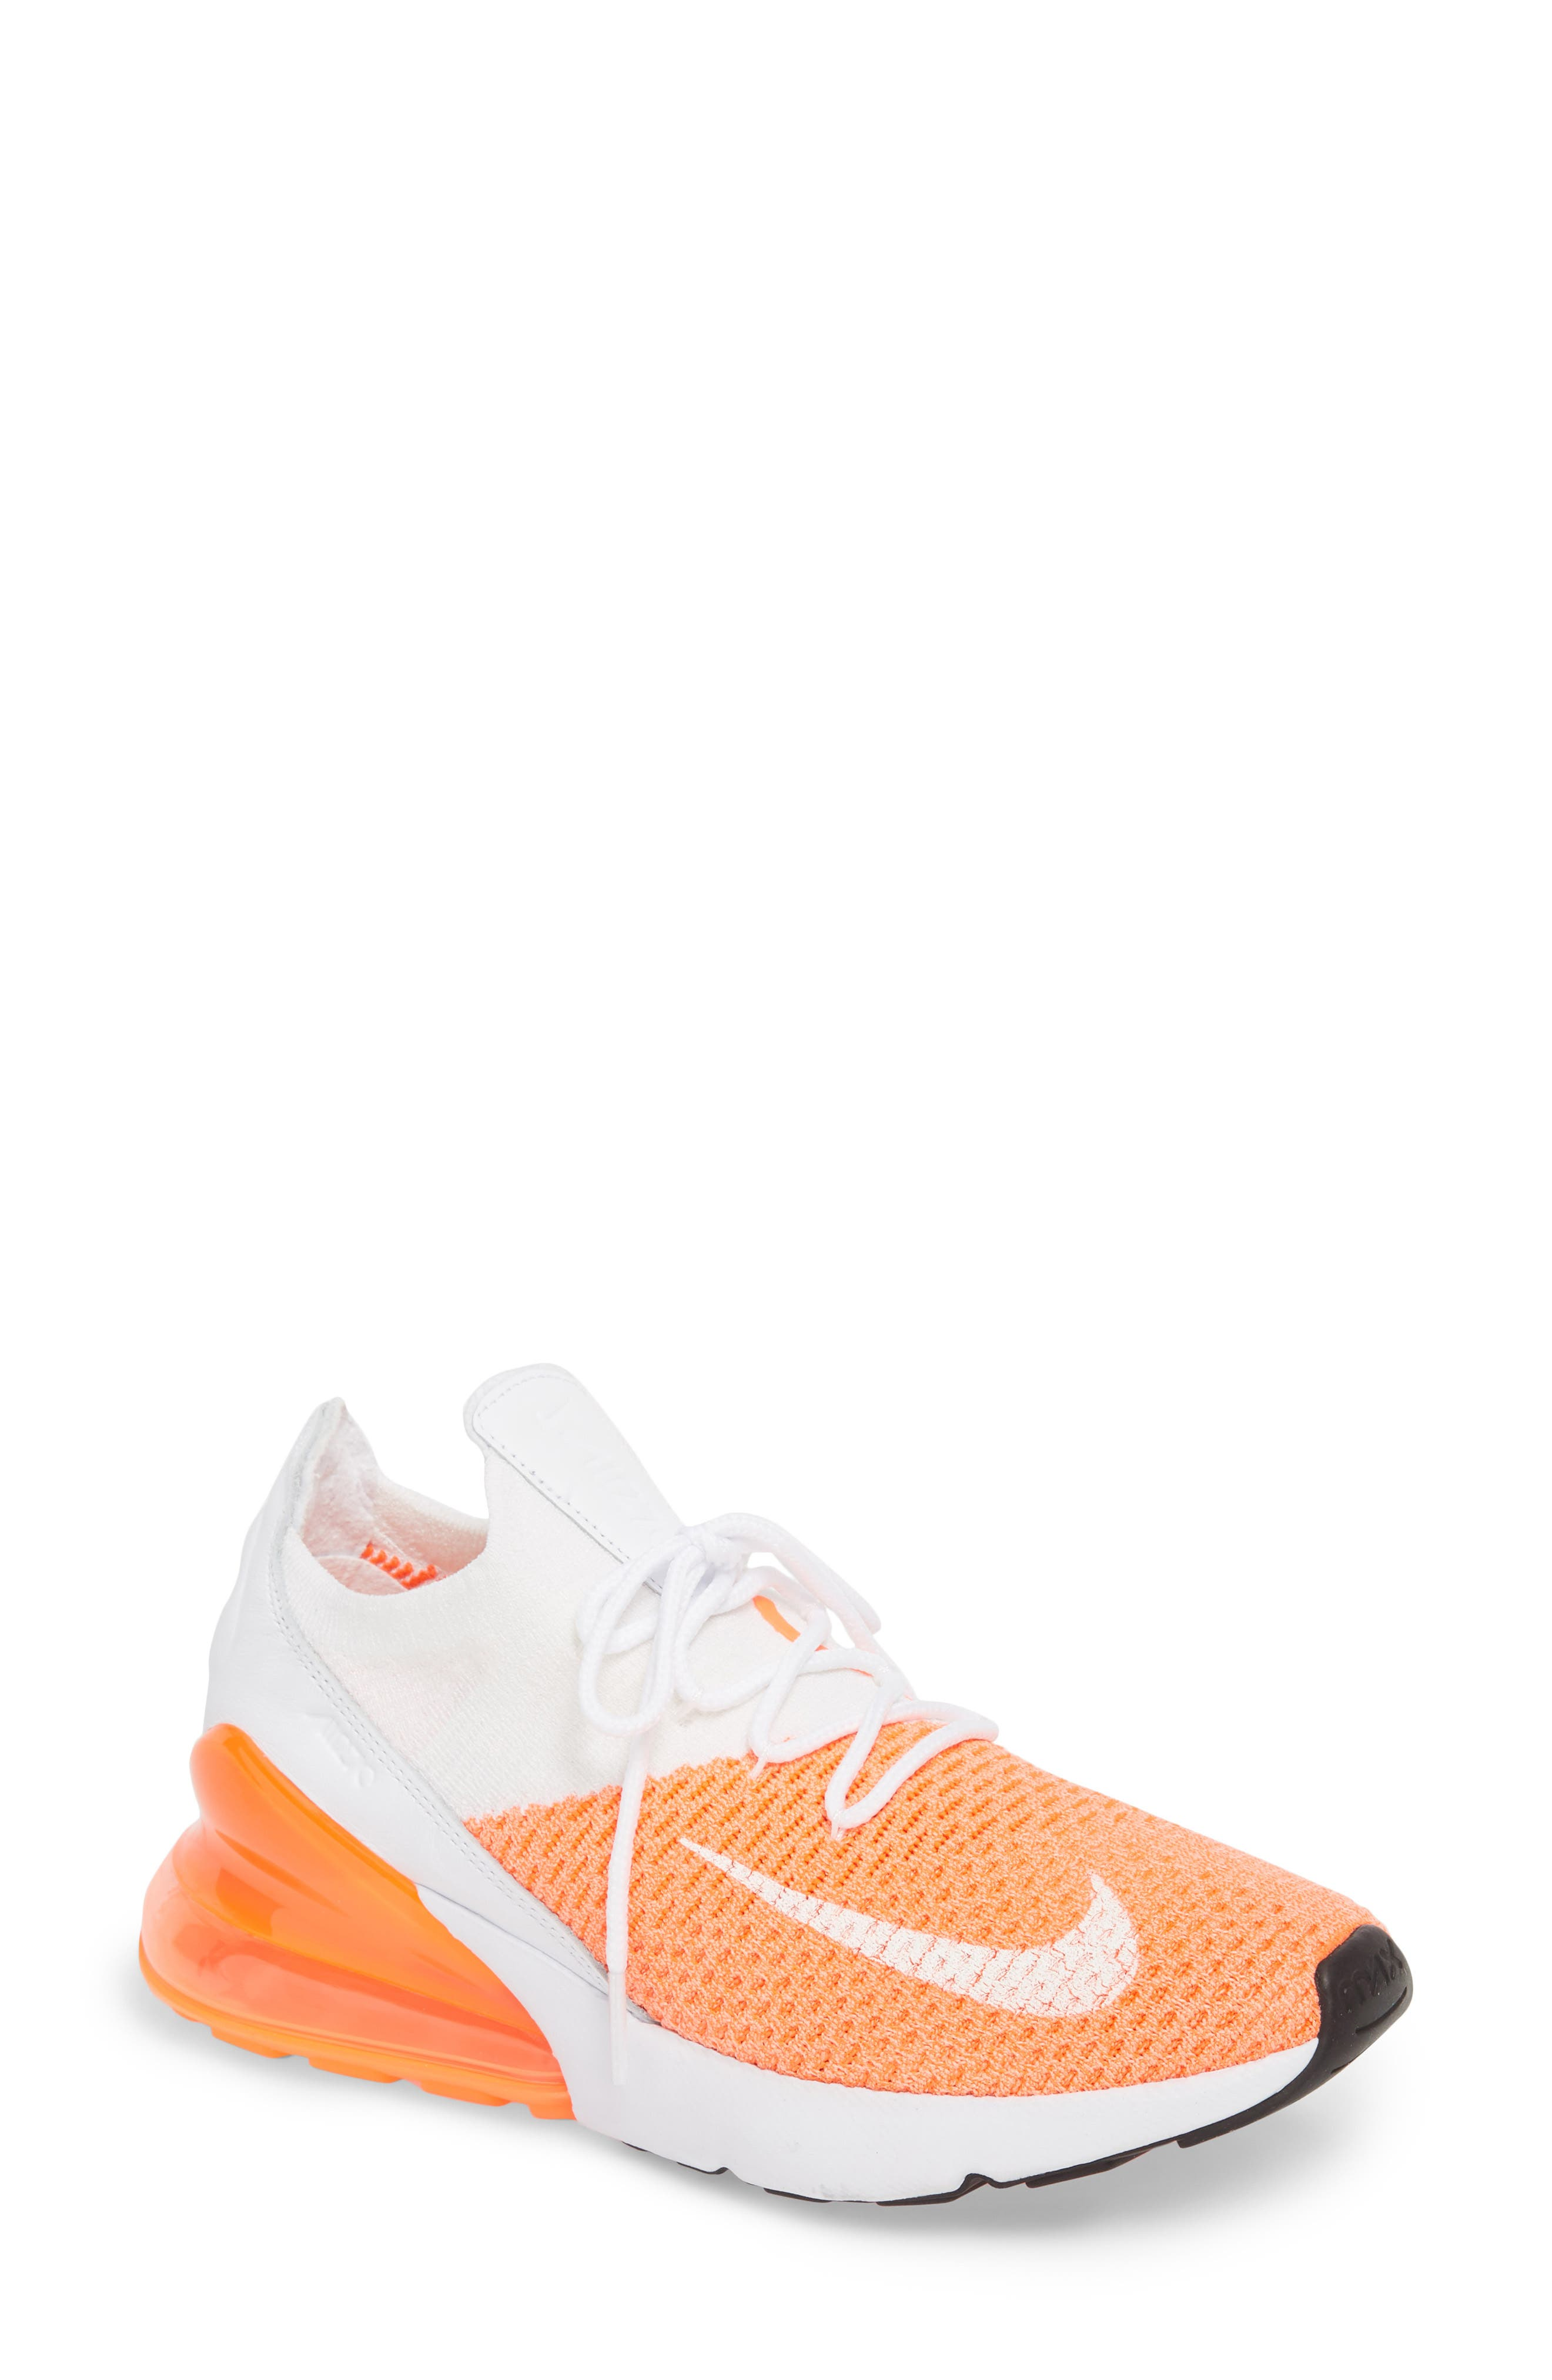 Air Max 270 Flyknit Sneaker,                         Main,                         color, Crimson Pulse/ White